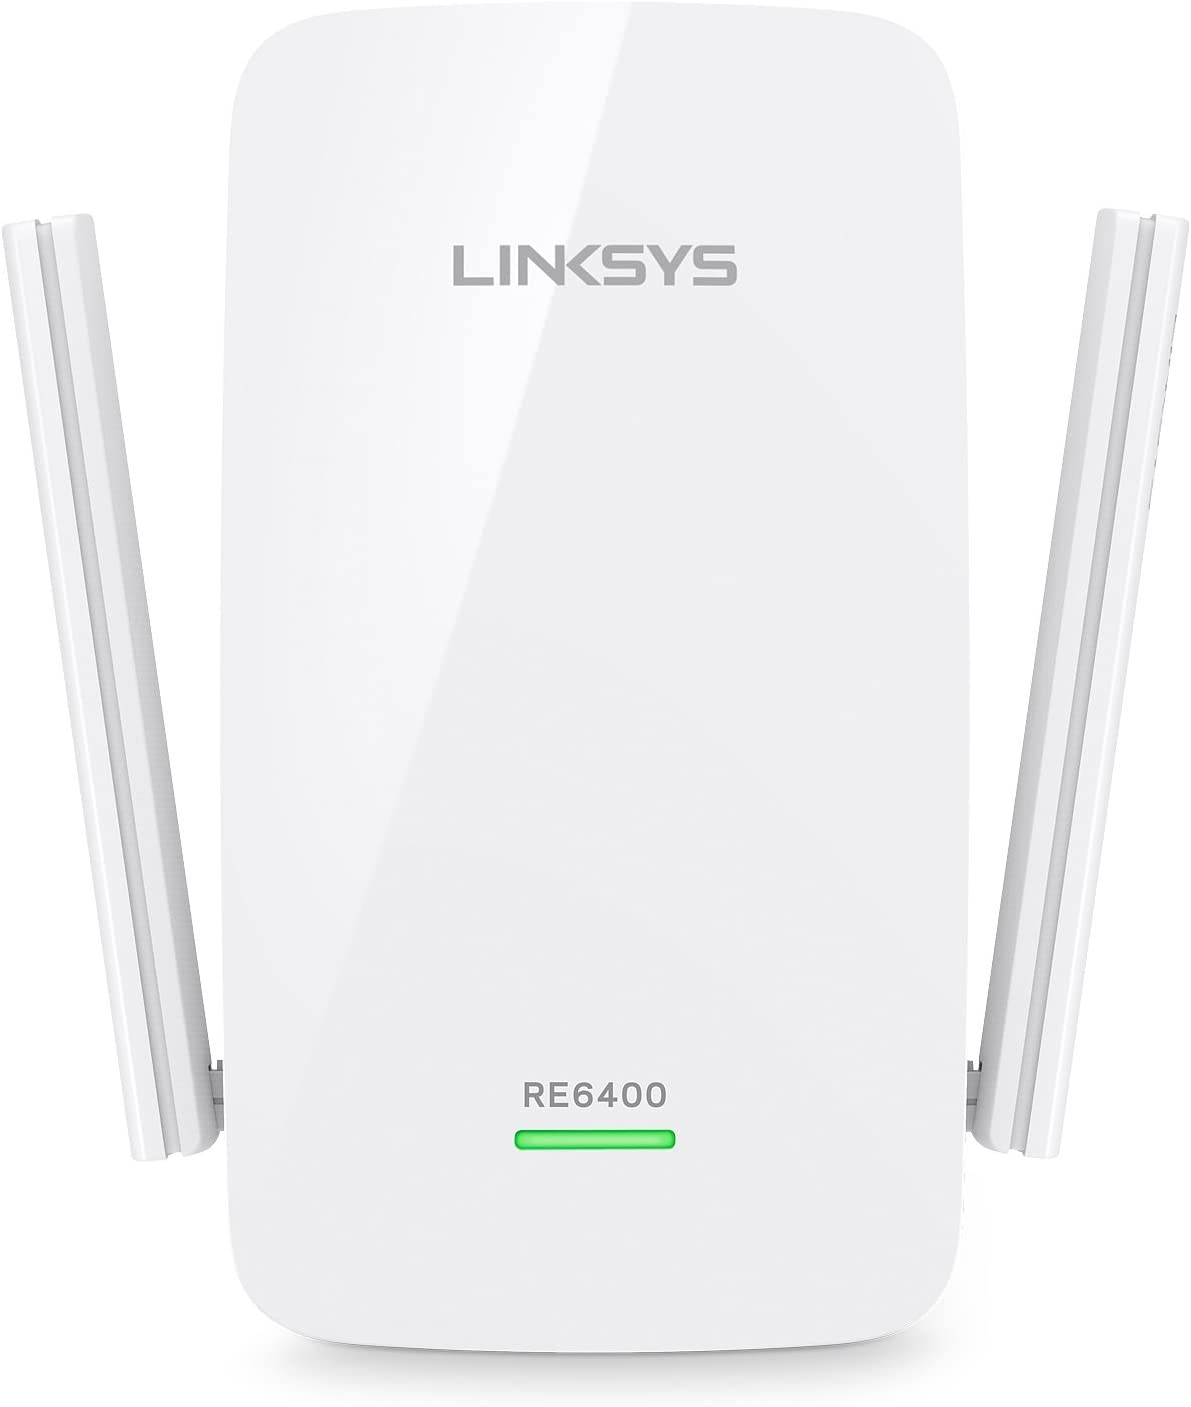 Linksys AC1200 Boost EX Dual-Band Wi-Fi Range Extender (RE6400)